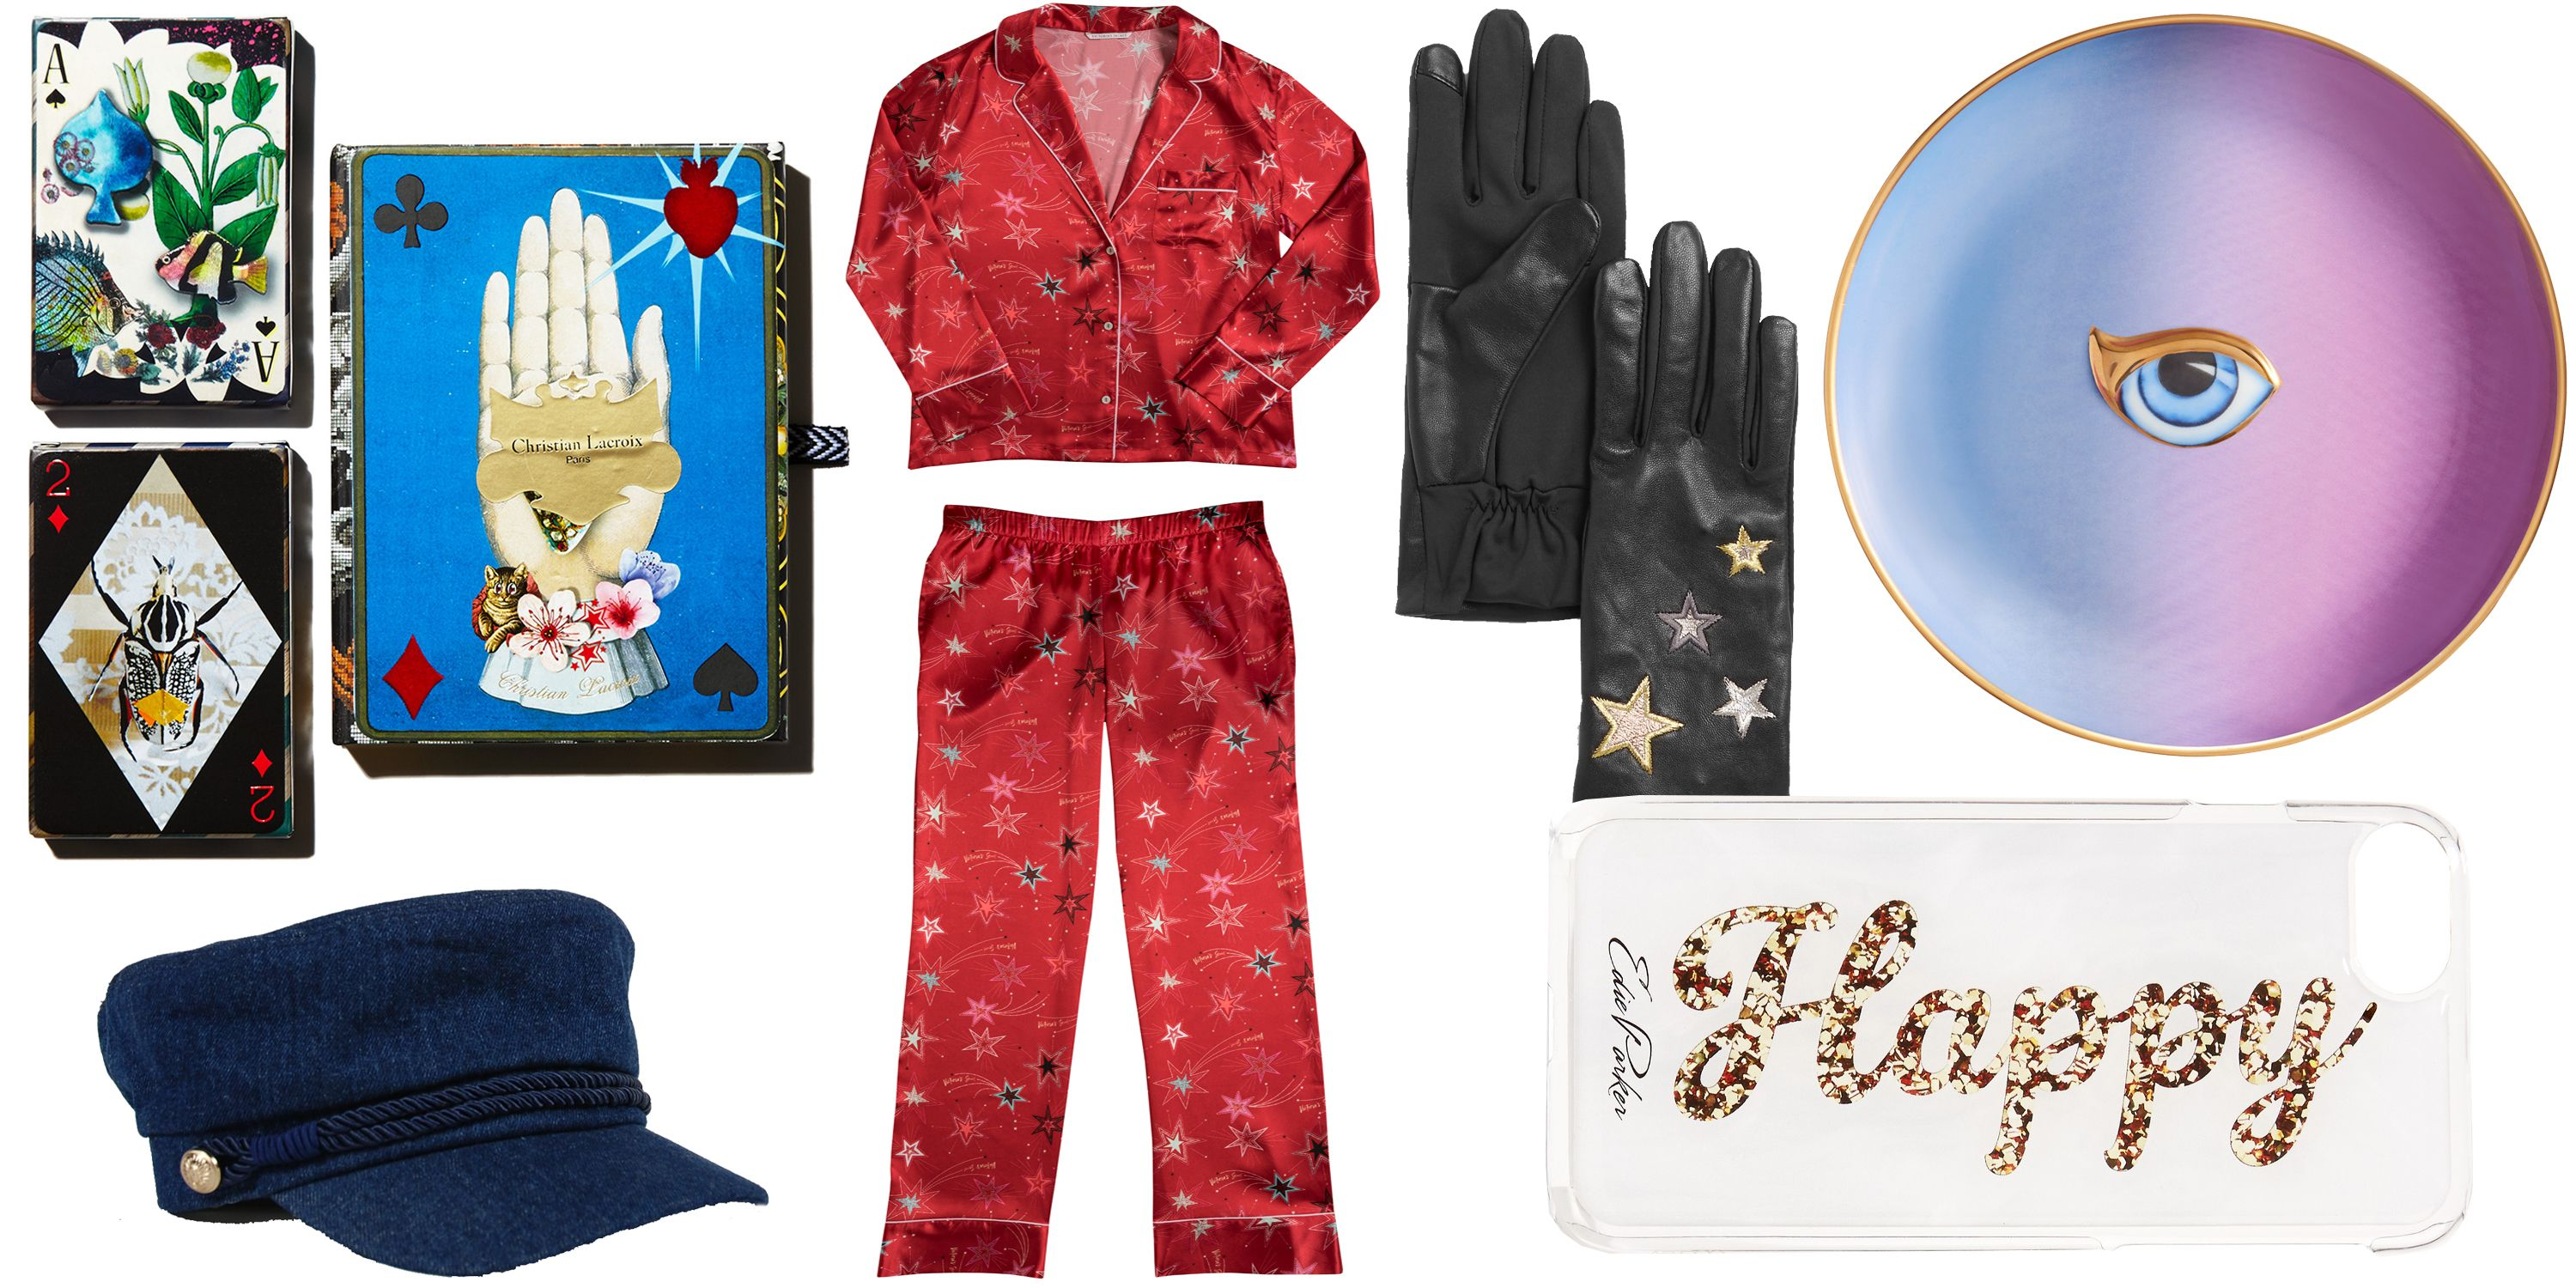 The Most Stylish Gifts for Under $100